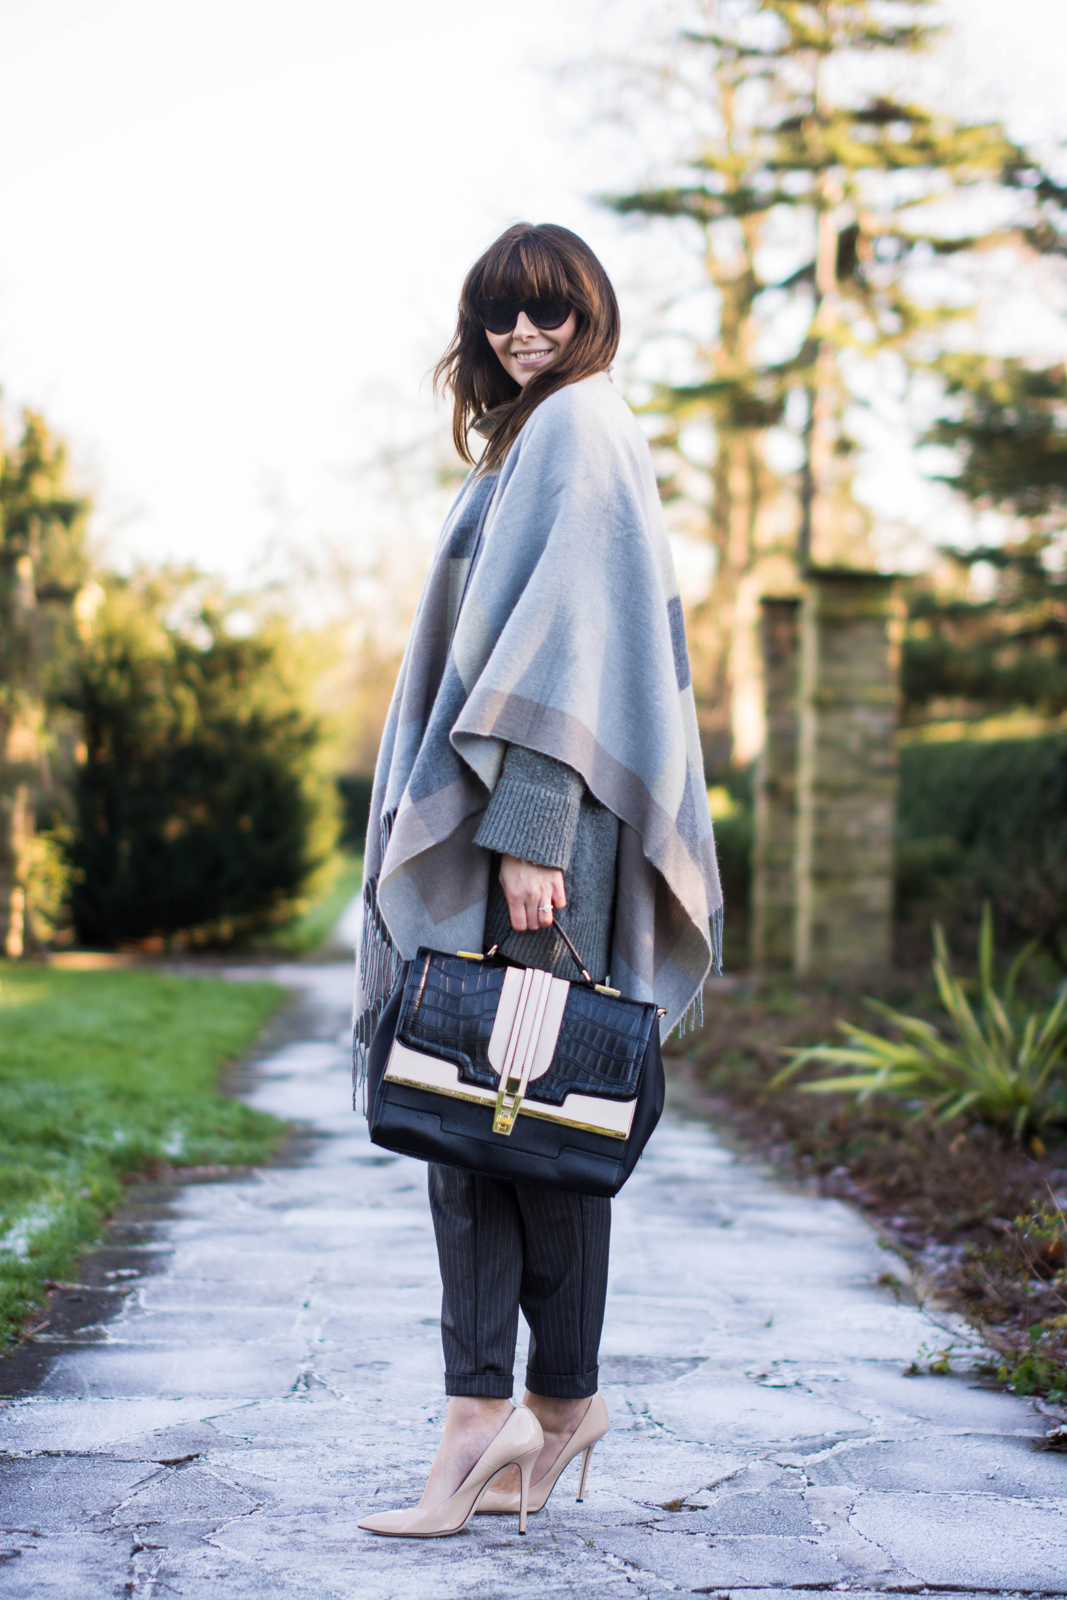 EJSTYLE - River Island Grey Blanket Cape, Nude Daniel Footwear heels, pinstripe forever 21 trousers, grey Zara jumper, River Island bag, OOTD, Winter outfit, fashion blogger